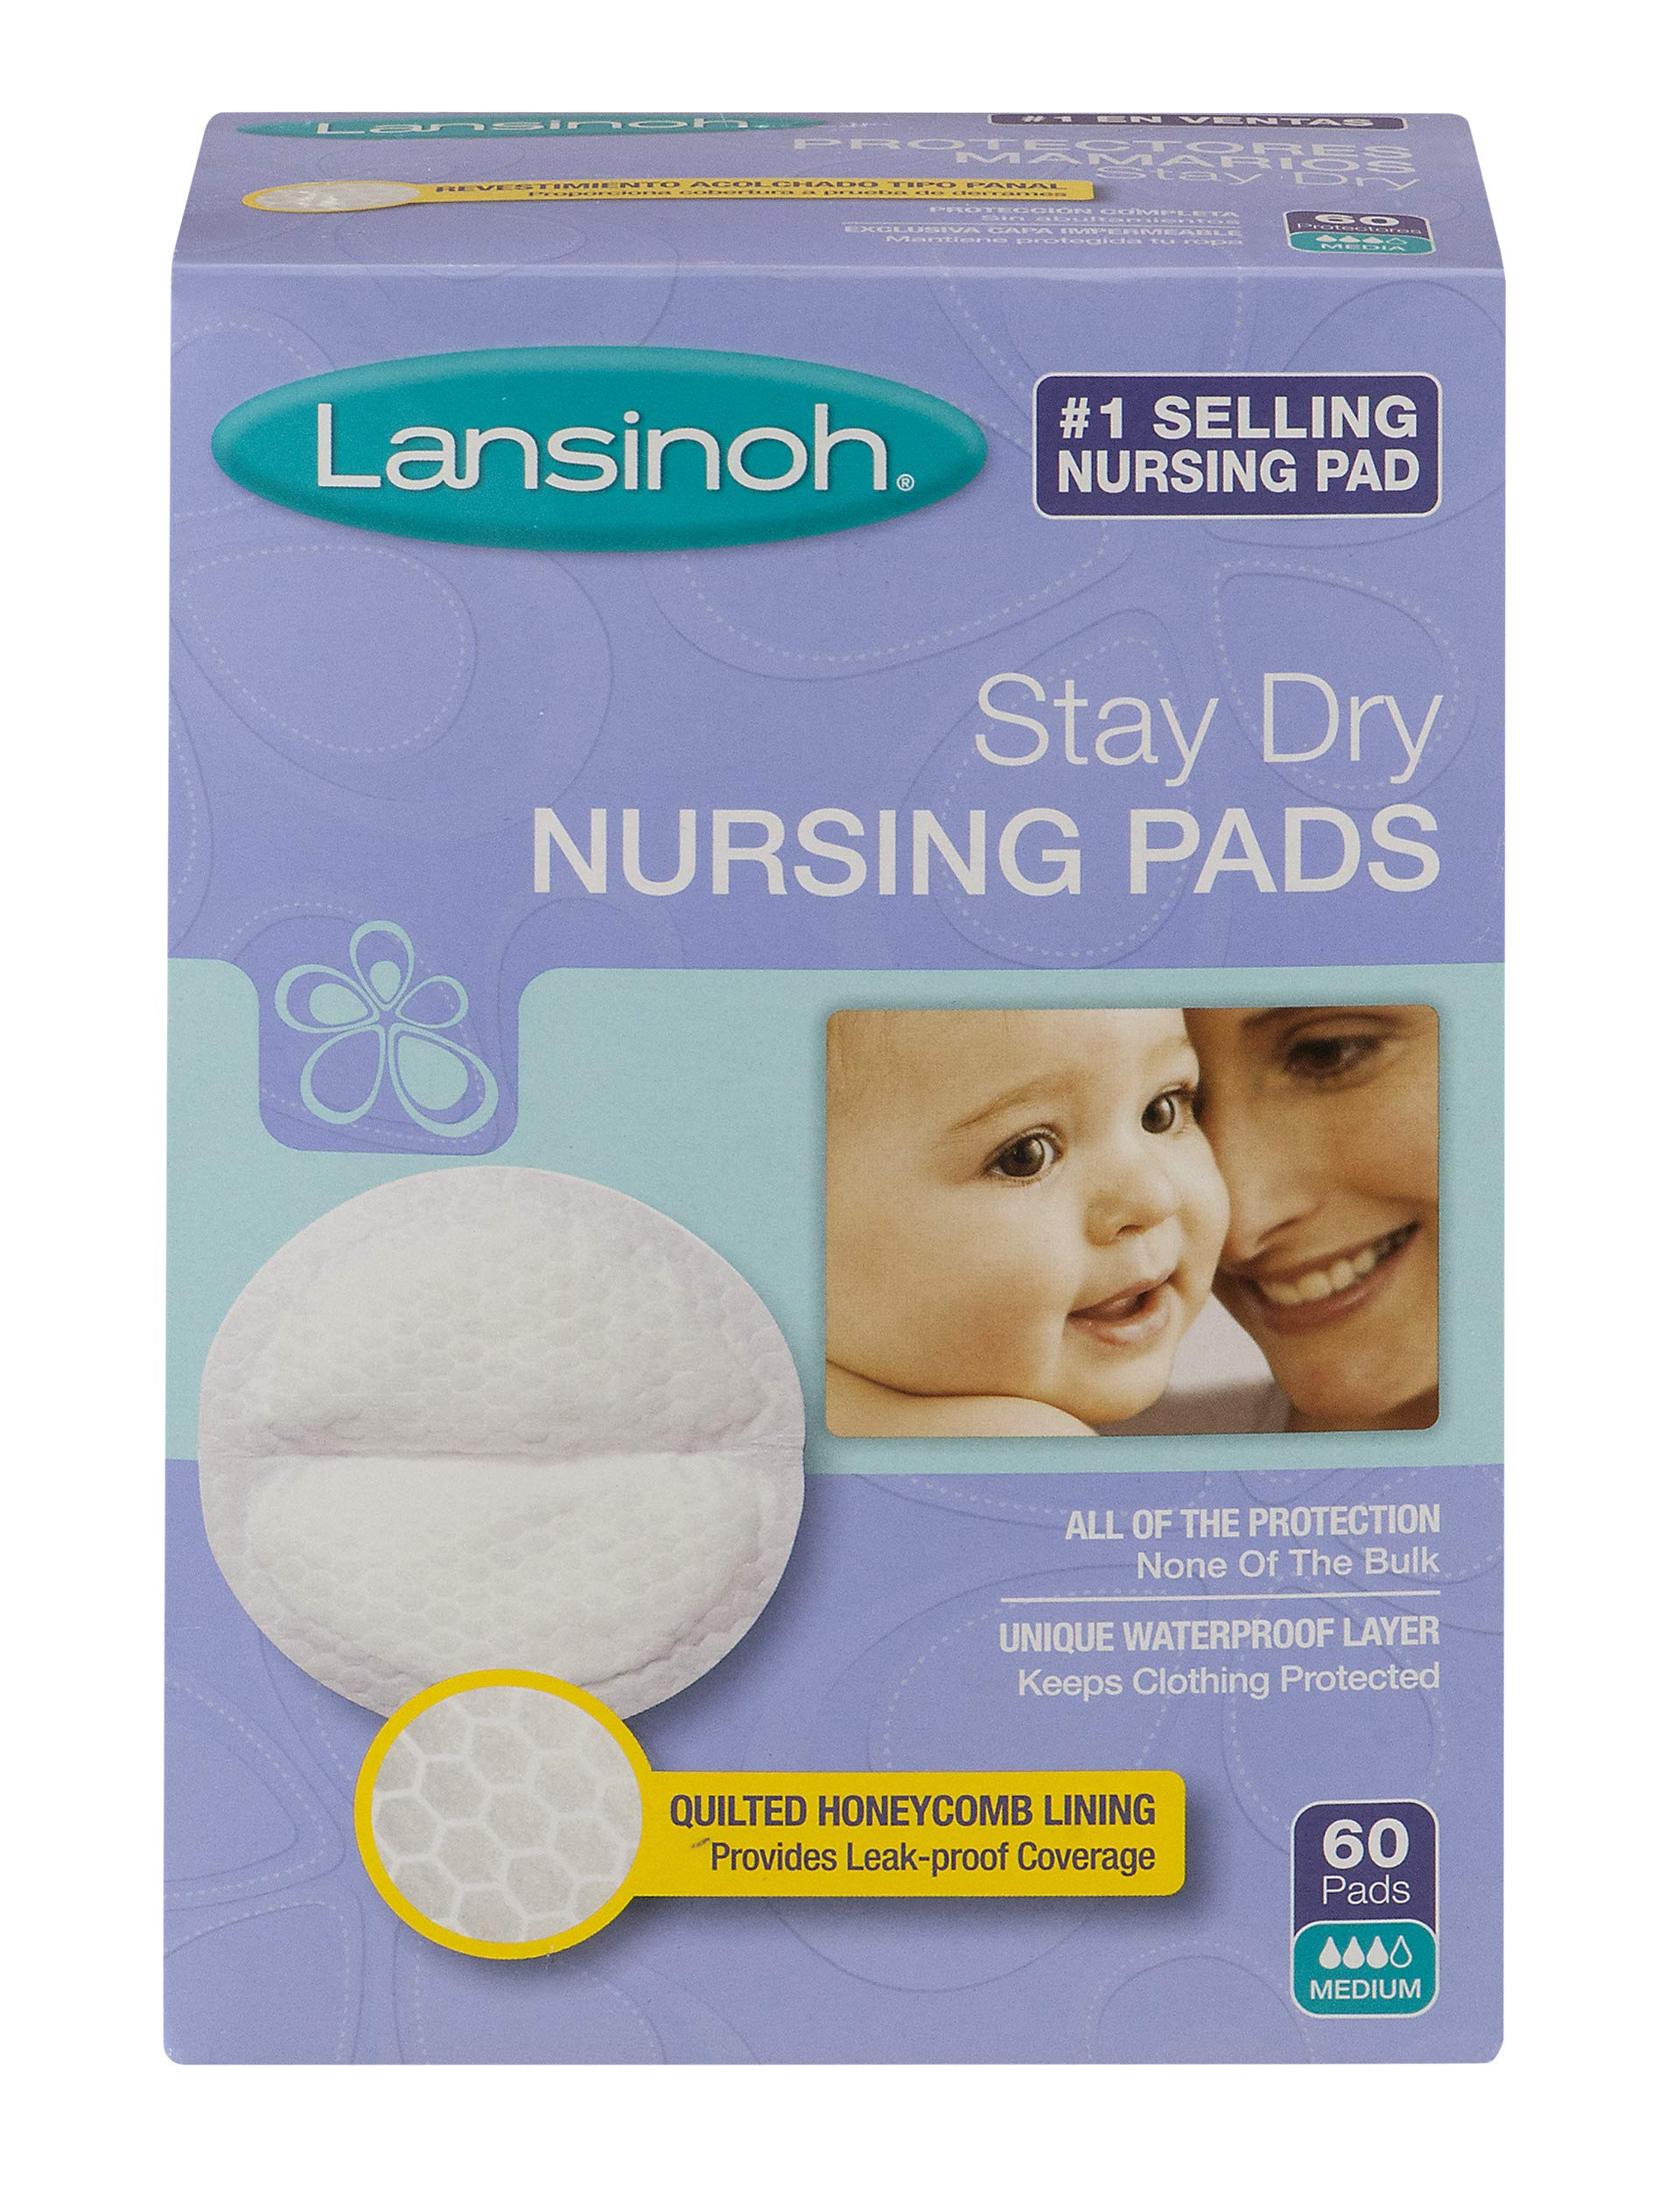 Lansinoh Nursing Pads Stay Dry 60 Each ( Pack of 2) by Lansinoh